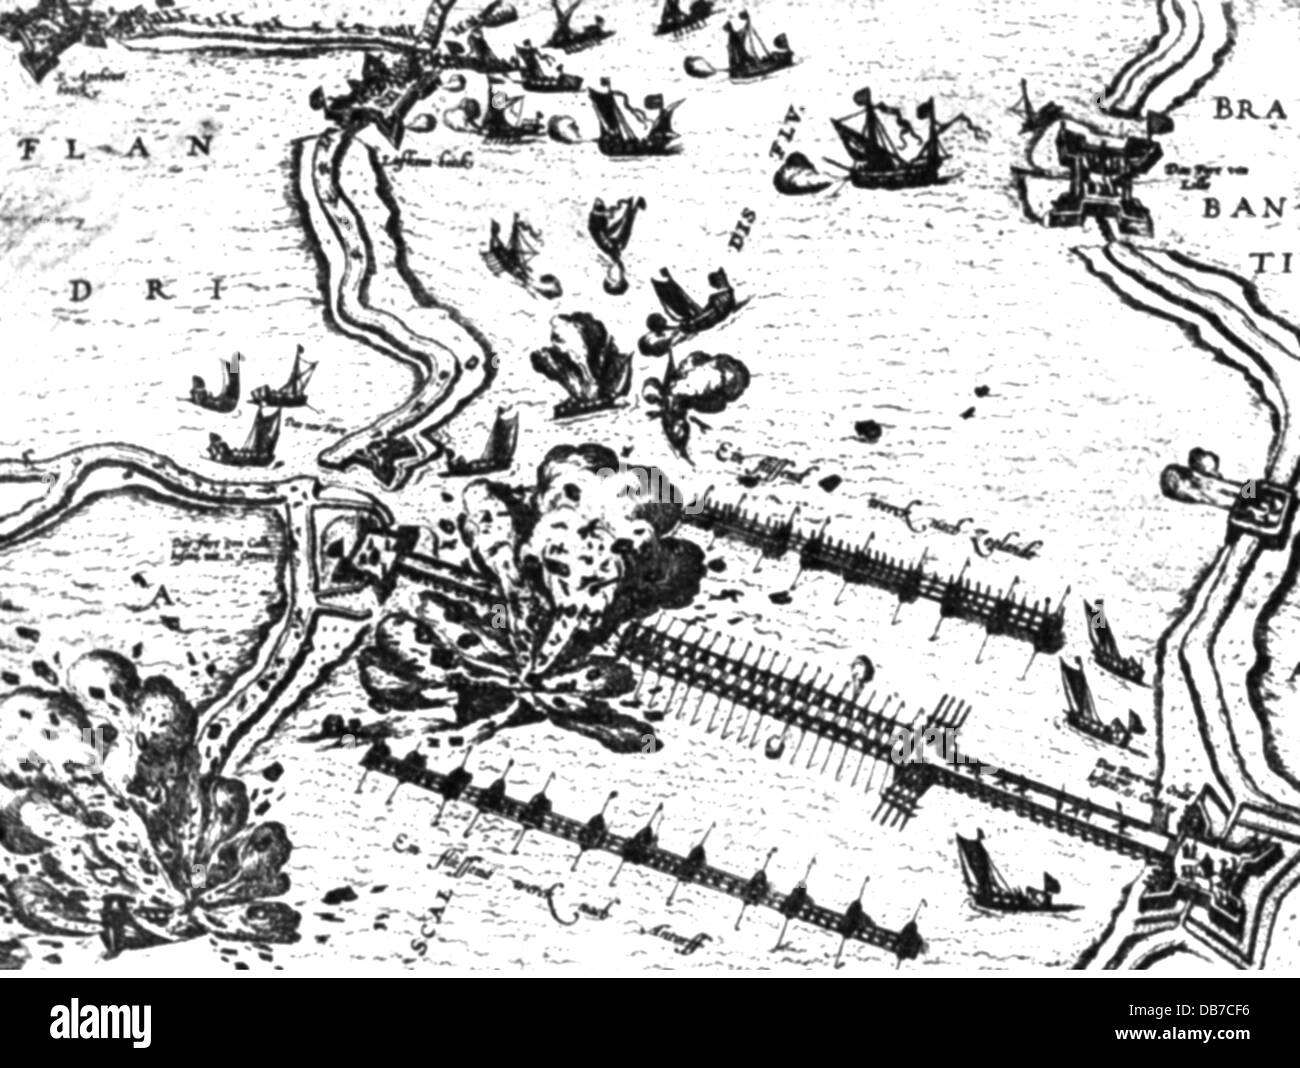 Eighty Years' War 1568 - 1648, Siege of Antwerp, 1584 - 1585, trial to destroy the Spanish floating bridge with - Stock Image